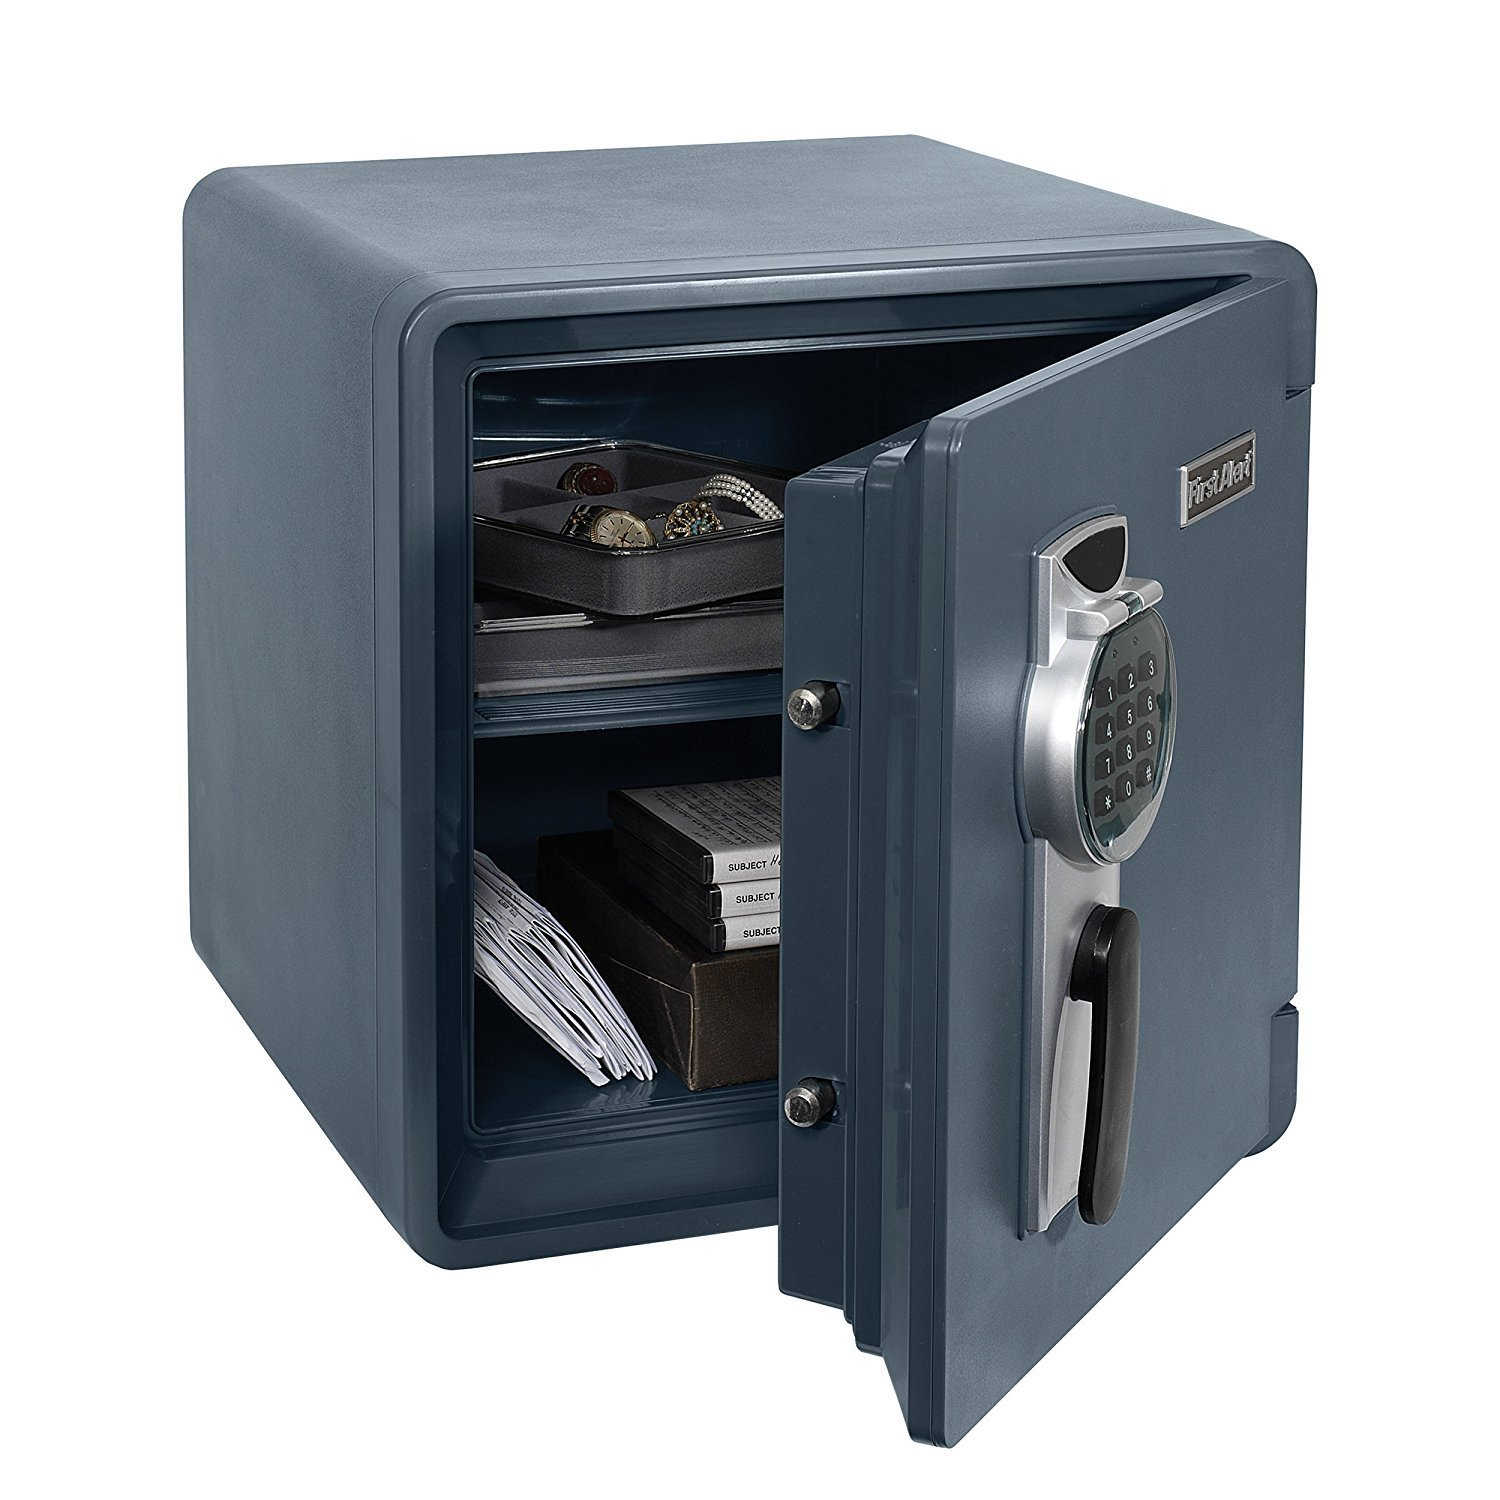 First Alert 2092DF Waterproof and Fire-Resistant Digital Safe, 1.31 Cubic Feet